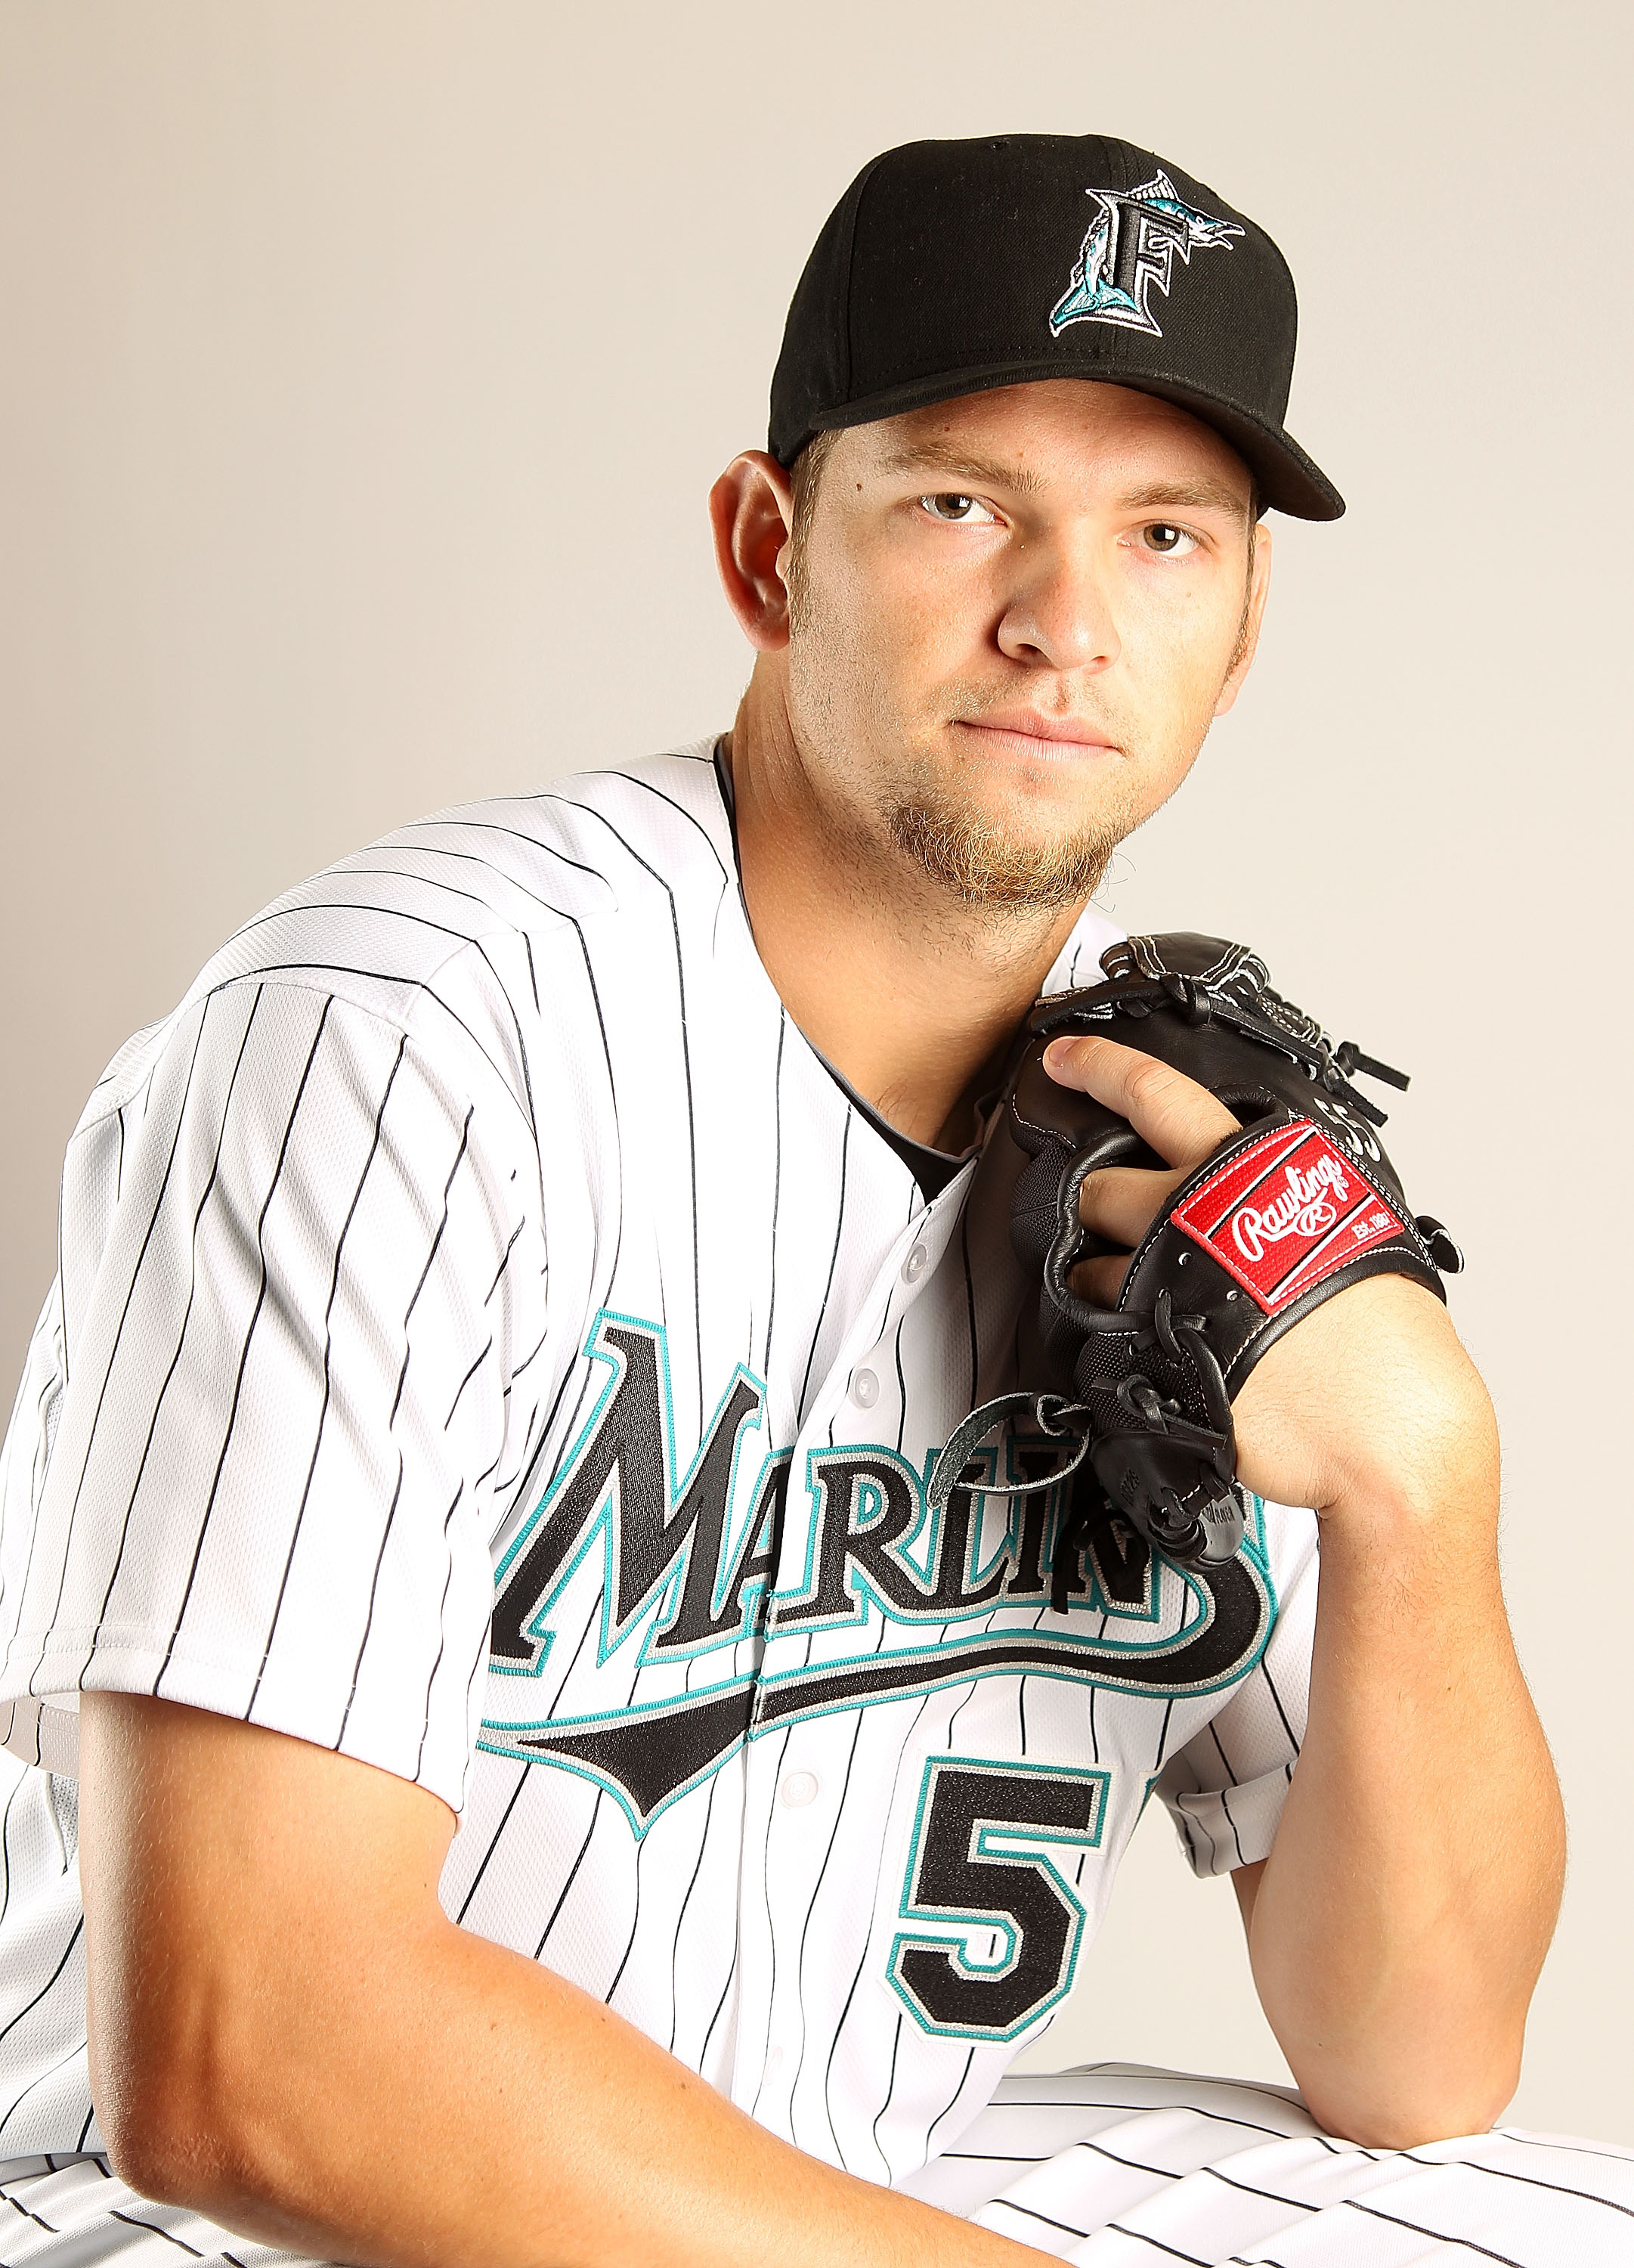 JUPITER, FL - FEBRUARY 23:  Josh Johnson #55 of the Florida Marlins during Photo Day at Roger Dean Stadium on February 23, 2011 in Jupiter, Florida.  (Photo by Mike Ehrmann/Getty Images)